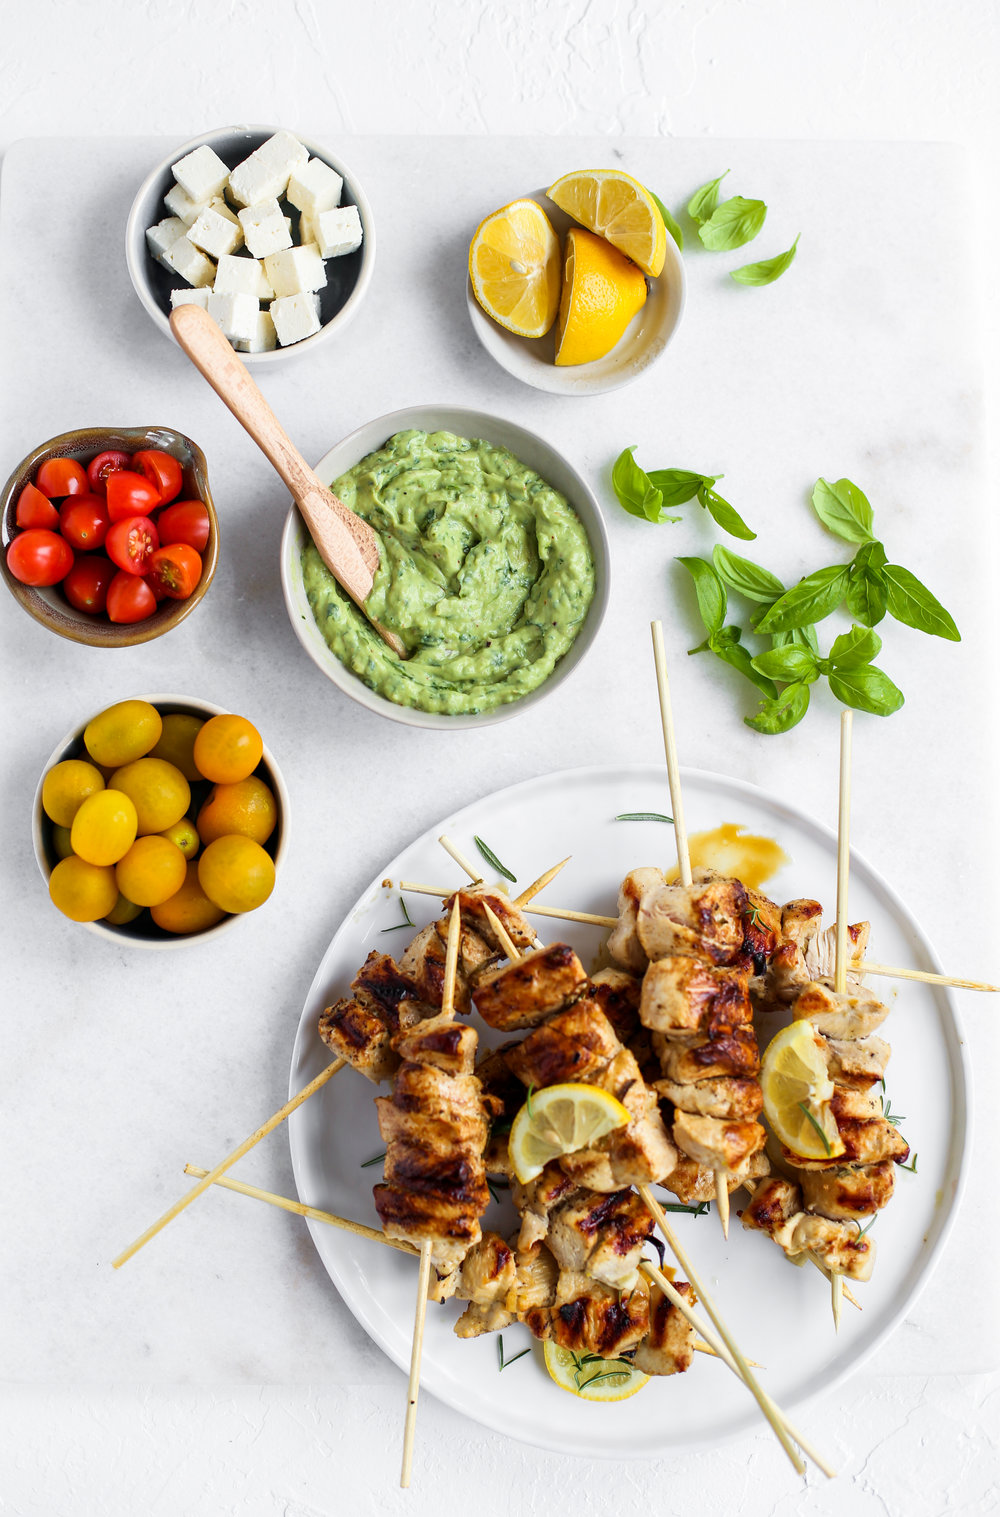 Lemon garlic chicken skewers with orzo and green goddess sauce-1.jpg